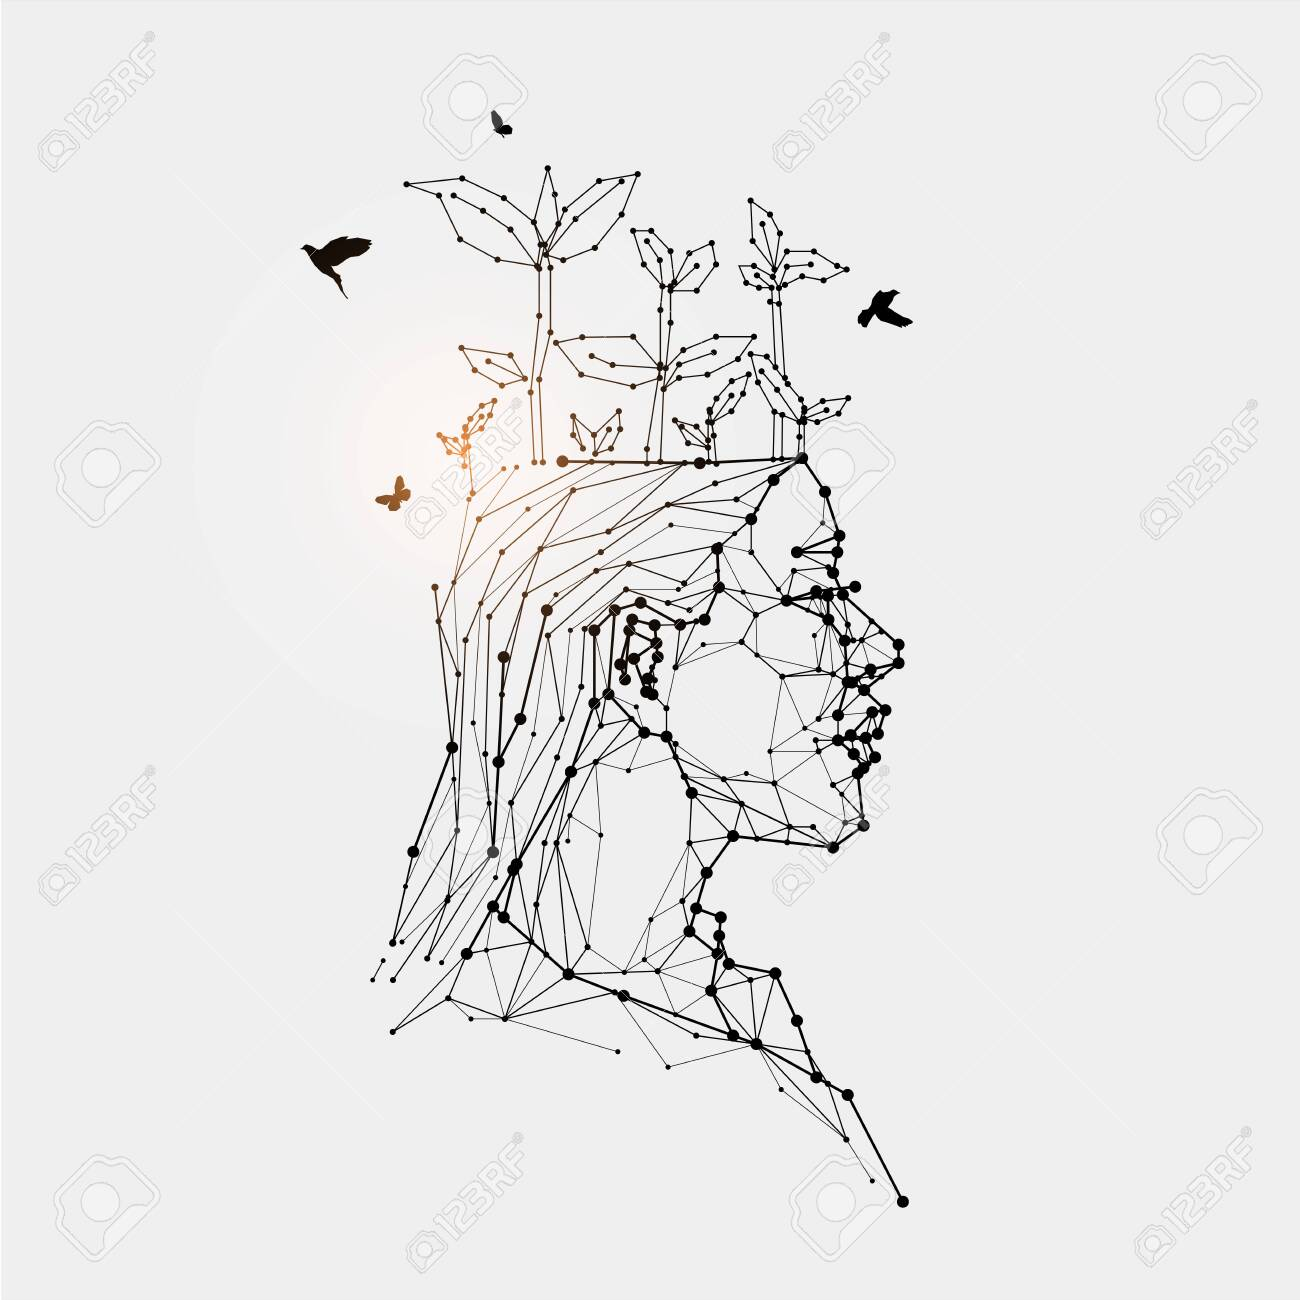 The Particles Geometric Art Line And Dot Of Human Head Abstract